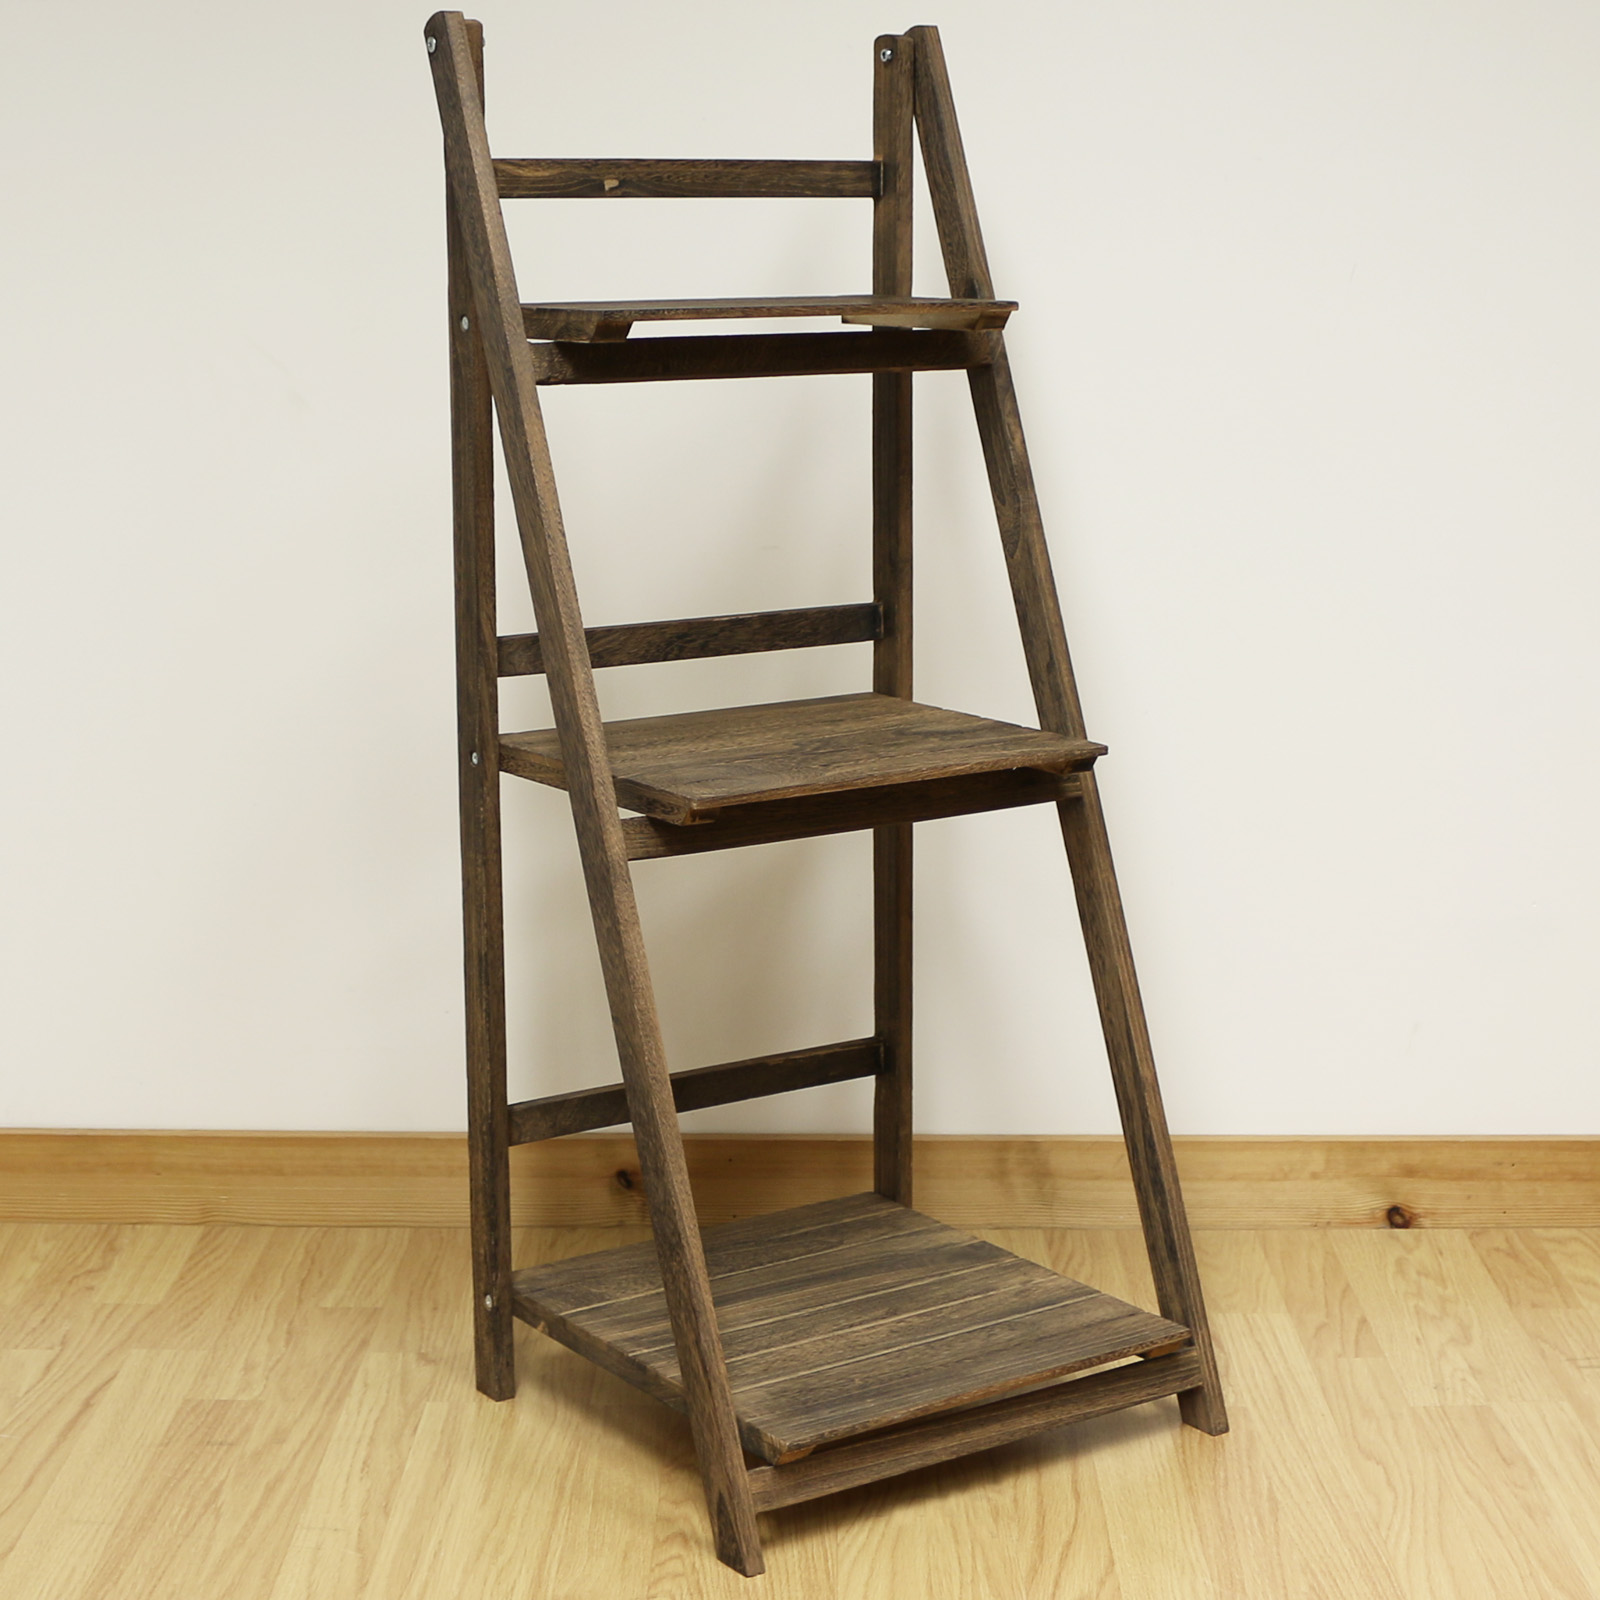 3 Tier Brown Ladder Shelf Display Unit Free Standing